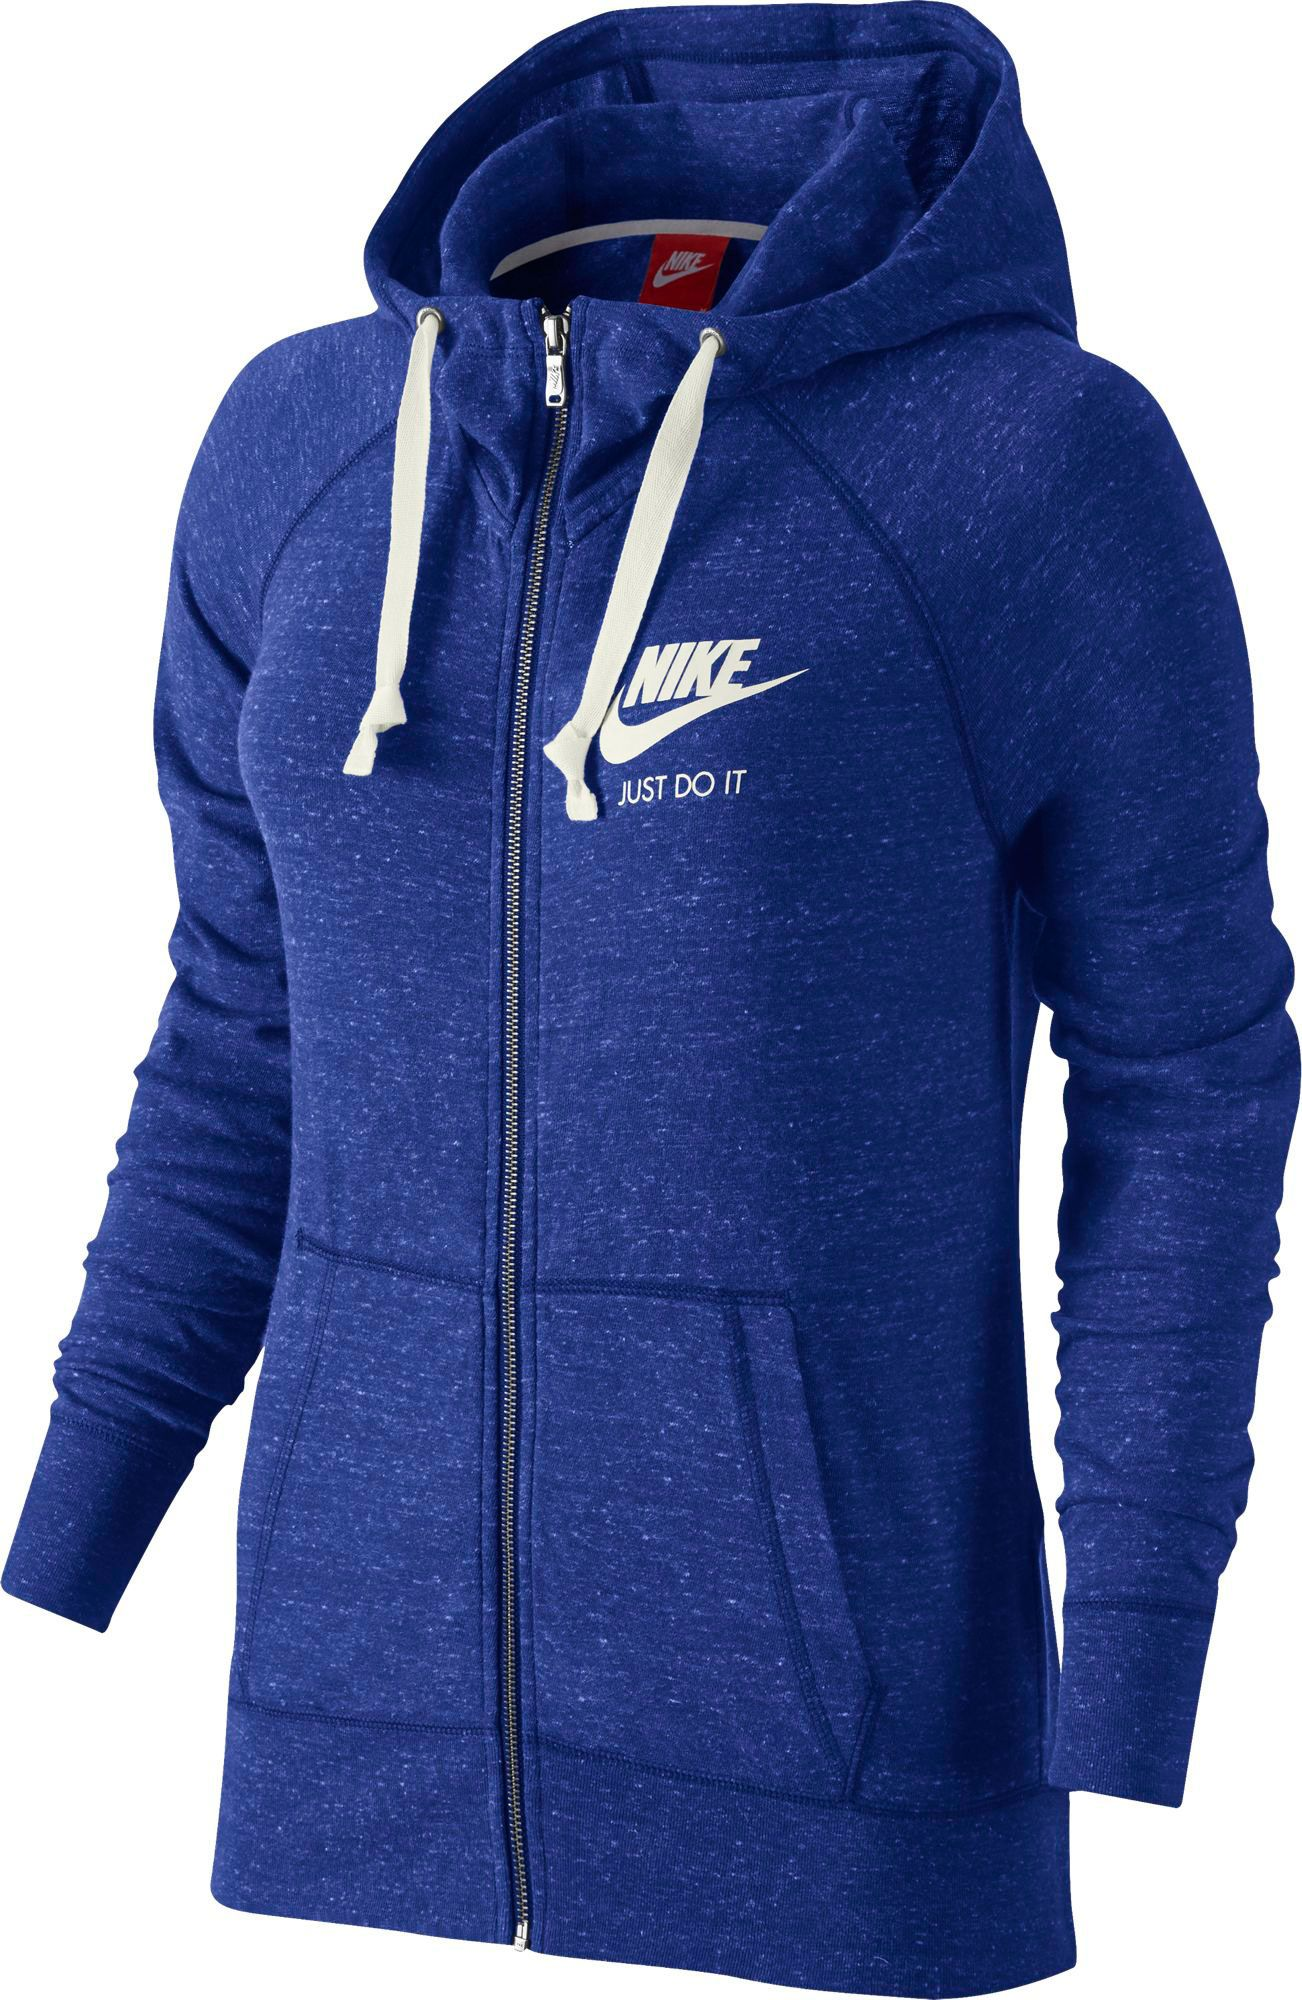 Nike Women's Gym Vintage Full Zip Hoodie | DICK'S Sporting Goods